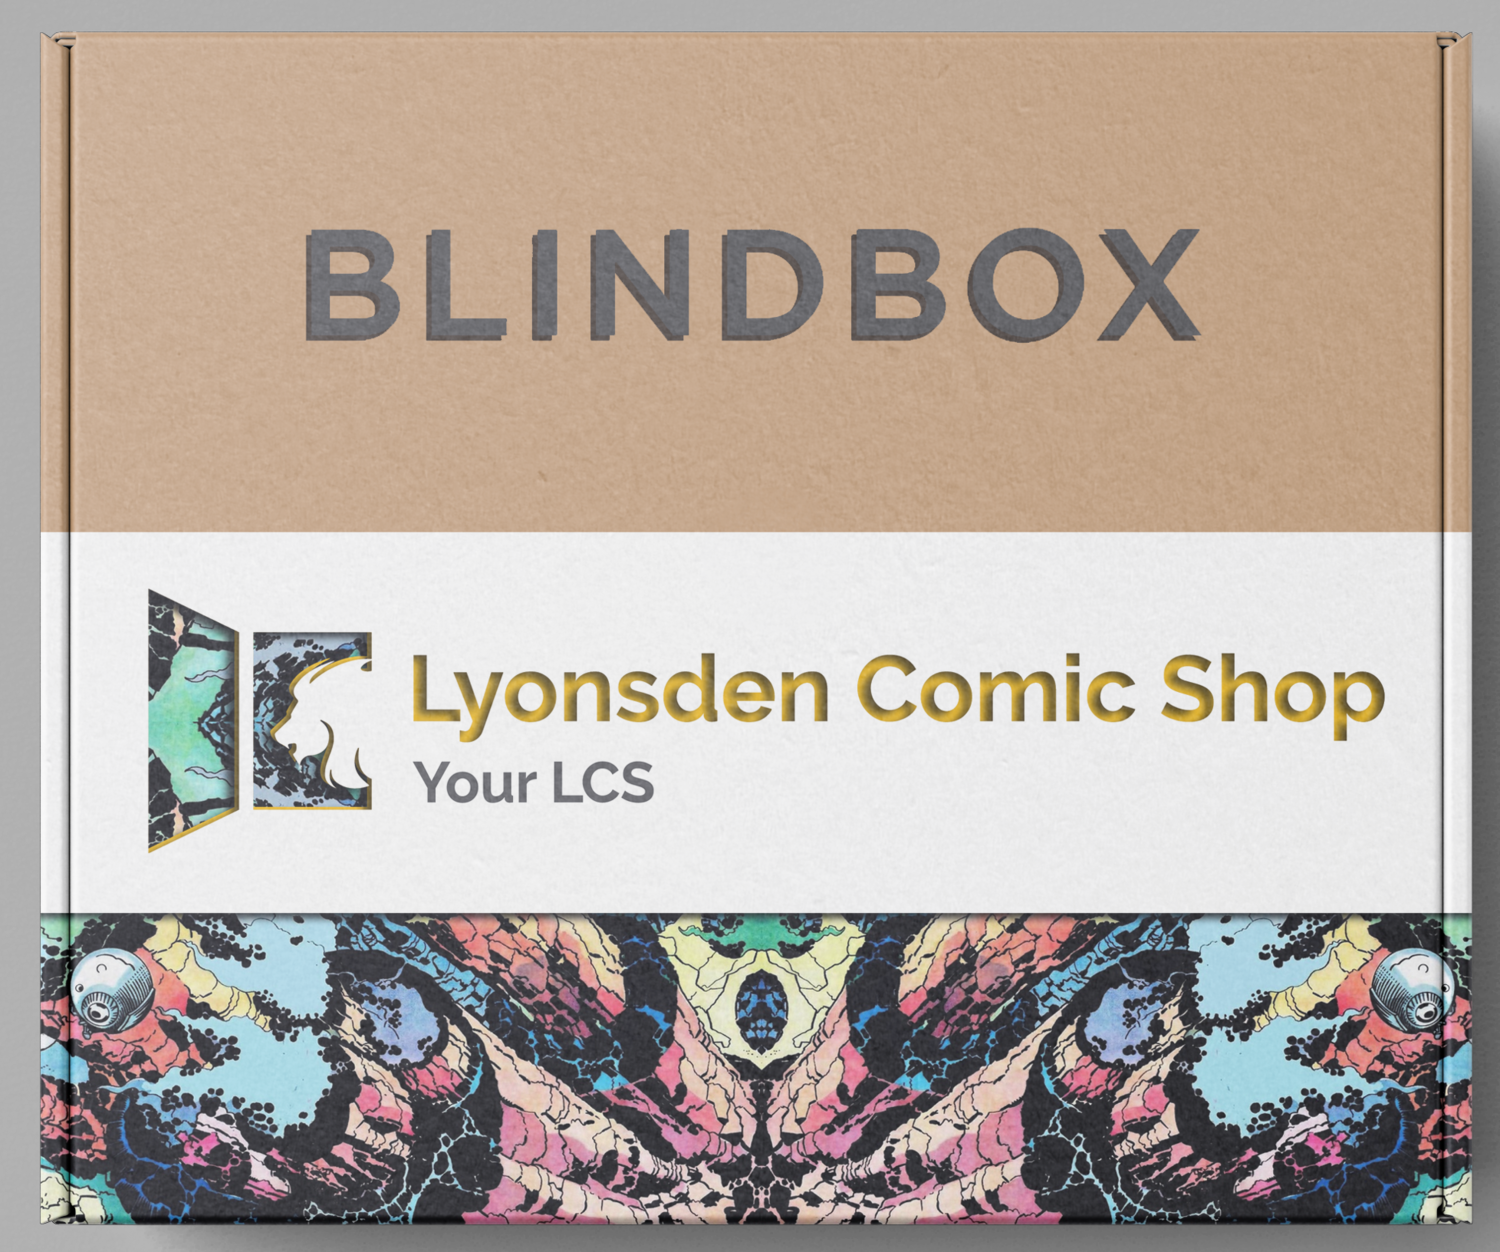 LCS BLIND BOX